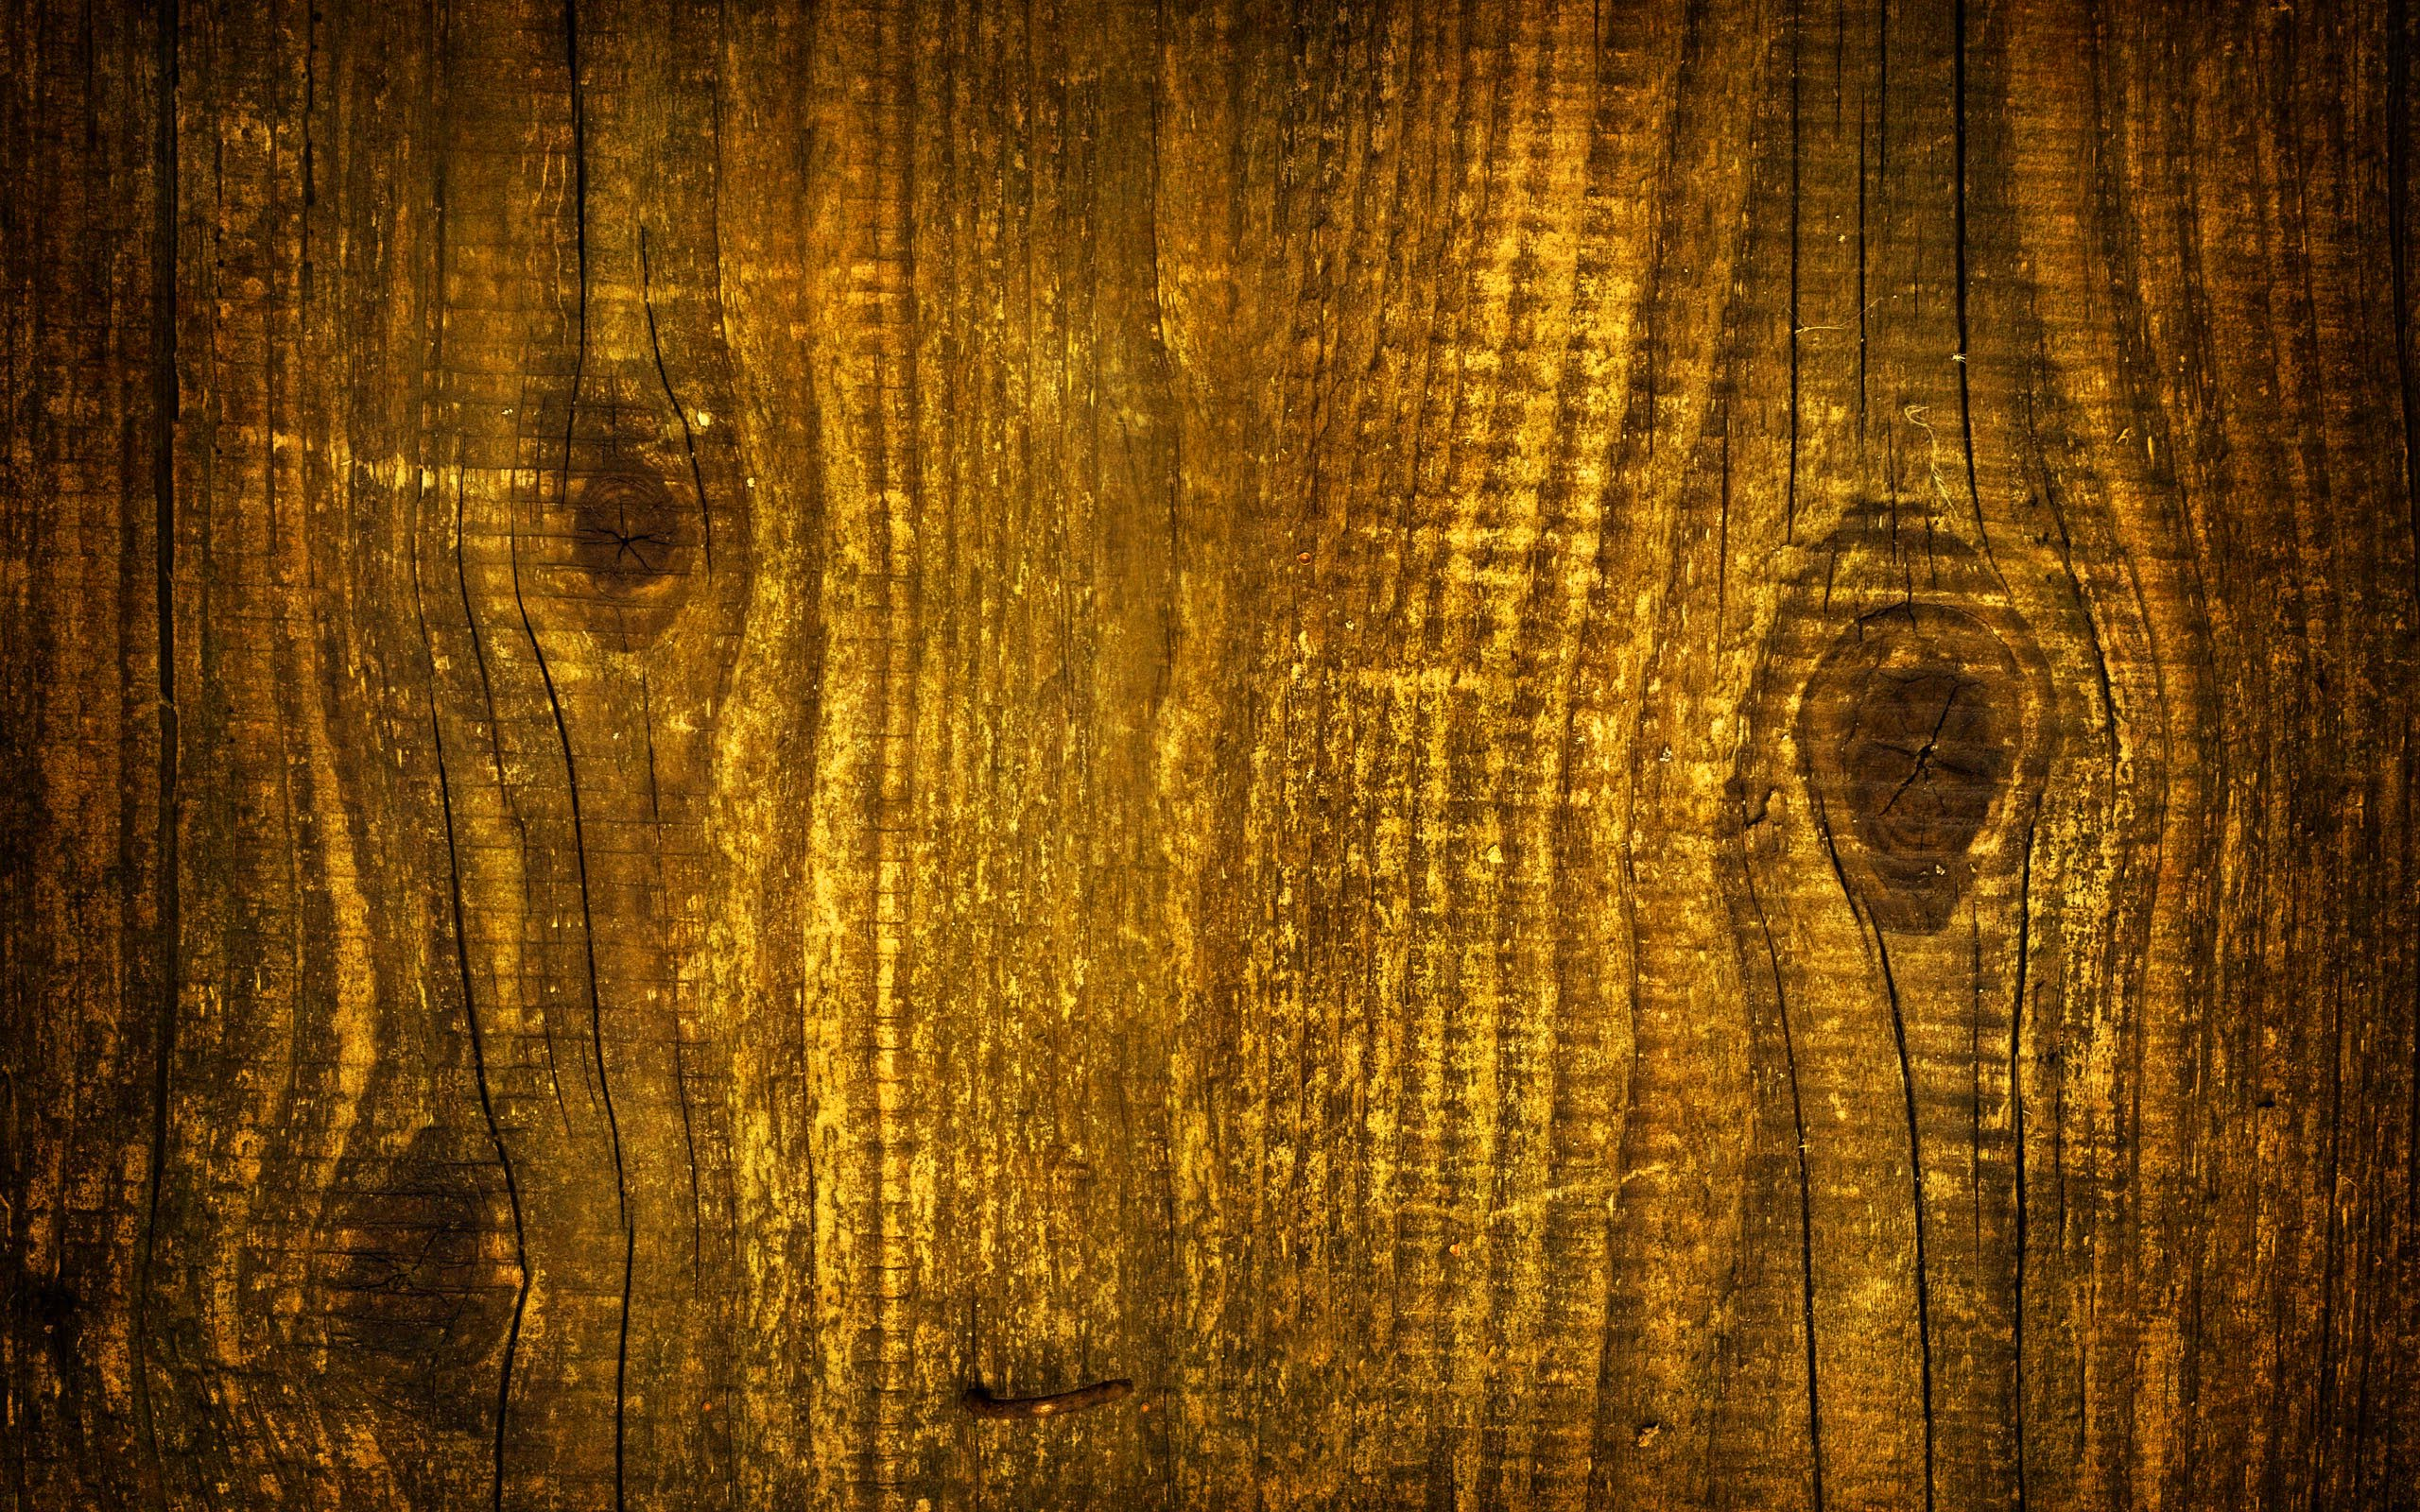 Wooden texture, Photo, Wood, Wallpaper, Tool, HQ Photo